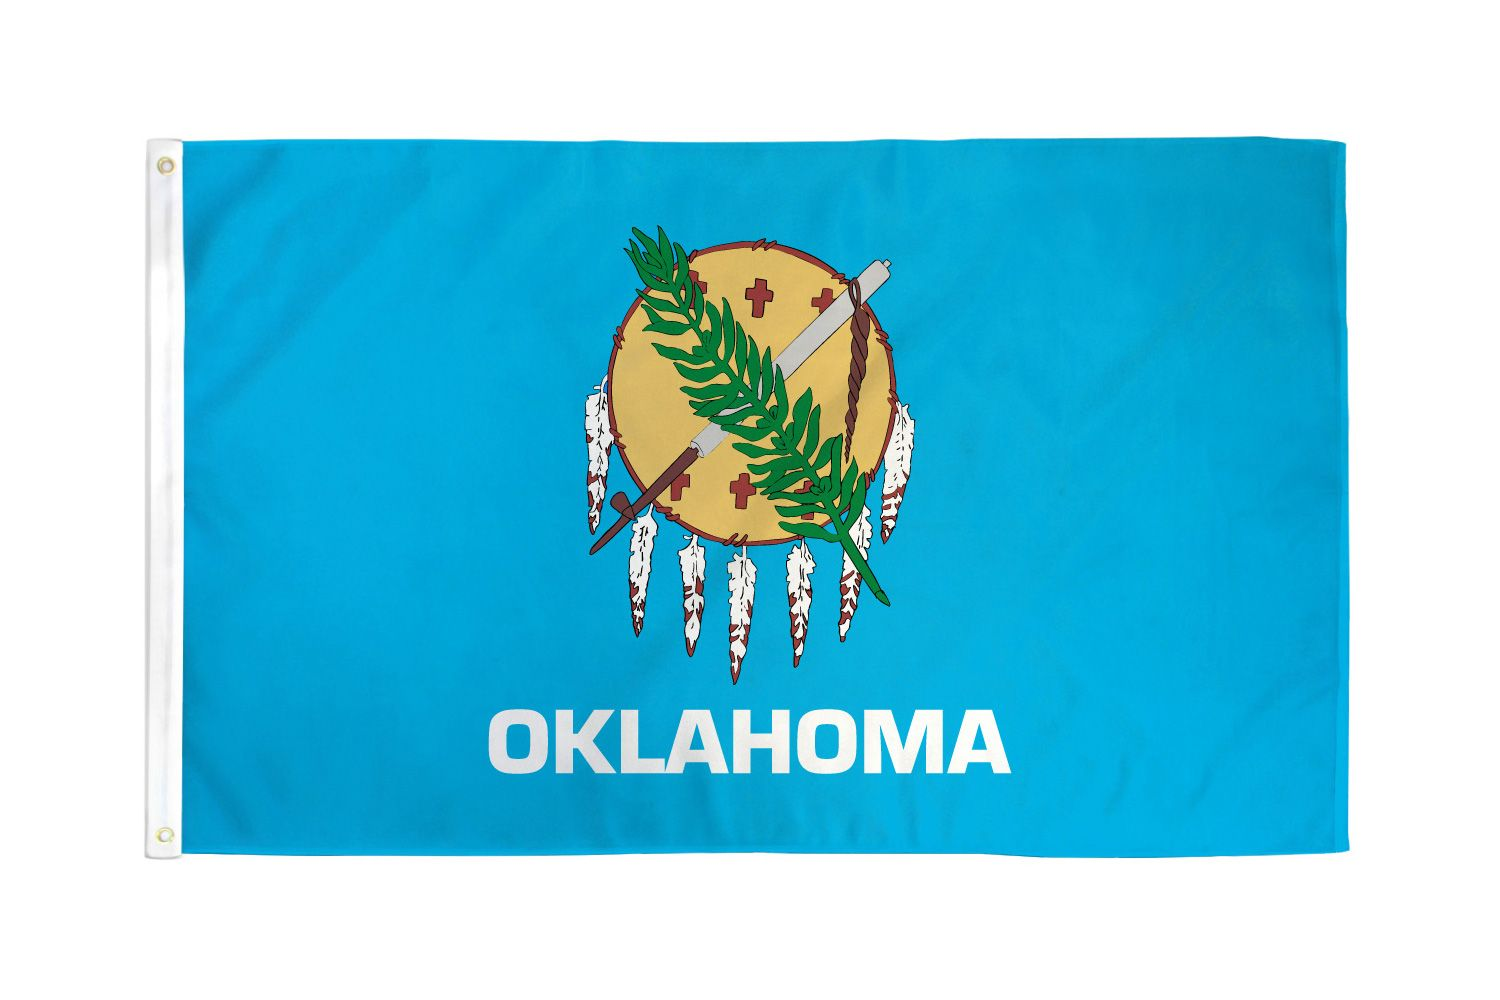 Shop72 - High Quality US State Flags - 100D 3x5 Polyester Flags - Oklahoma One Size